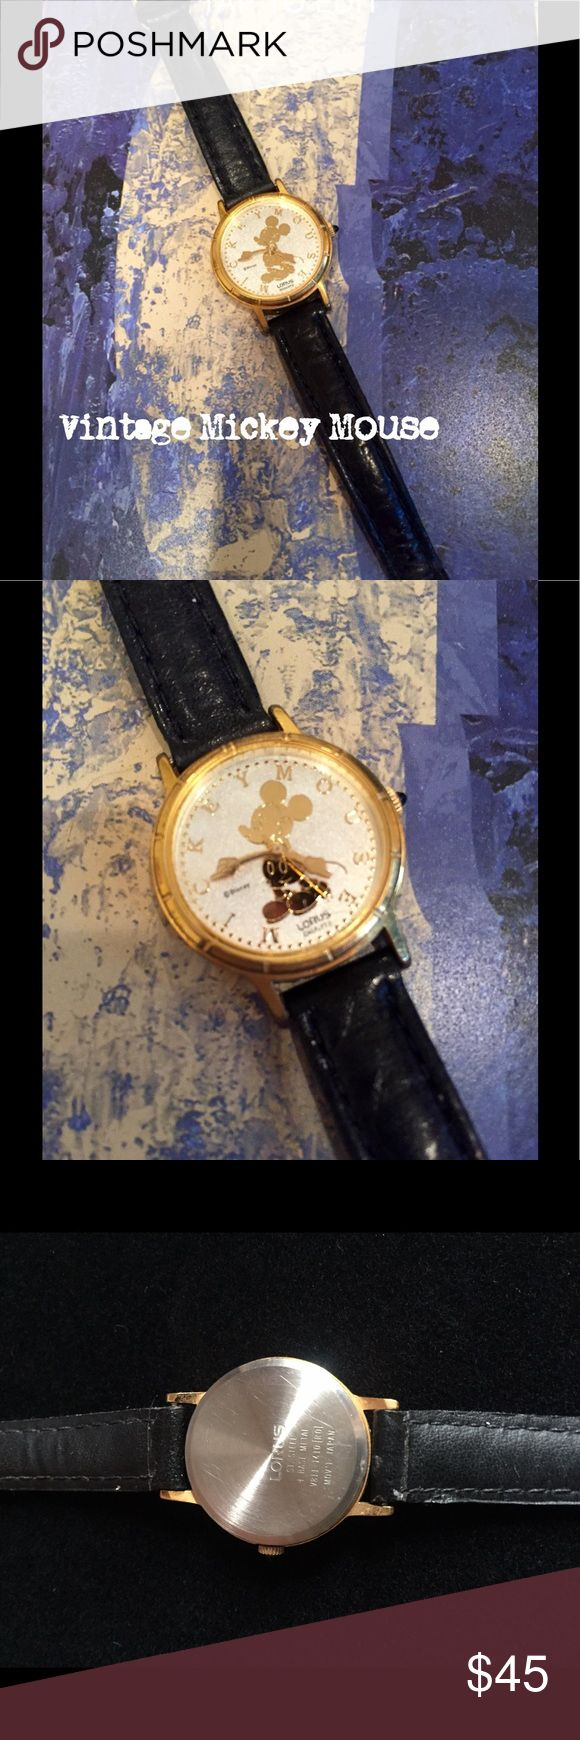 Vintage Lorus Mickey Mouse Watch 💫 Vintage Mickey Mouse Watch, Lorus Quartz, Black Leather Band, Gold Accent... light wear, battery needs to be replaced.. 💫 Lorus Jewelry